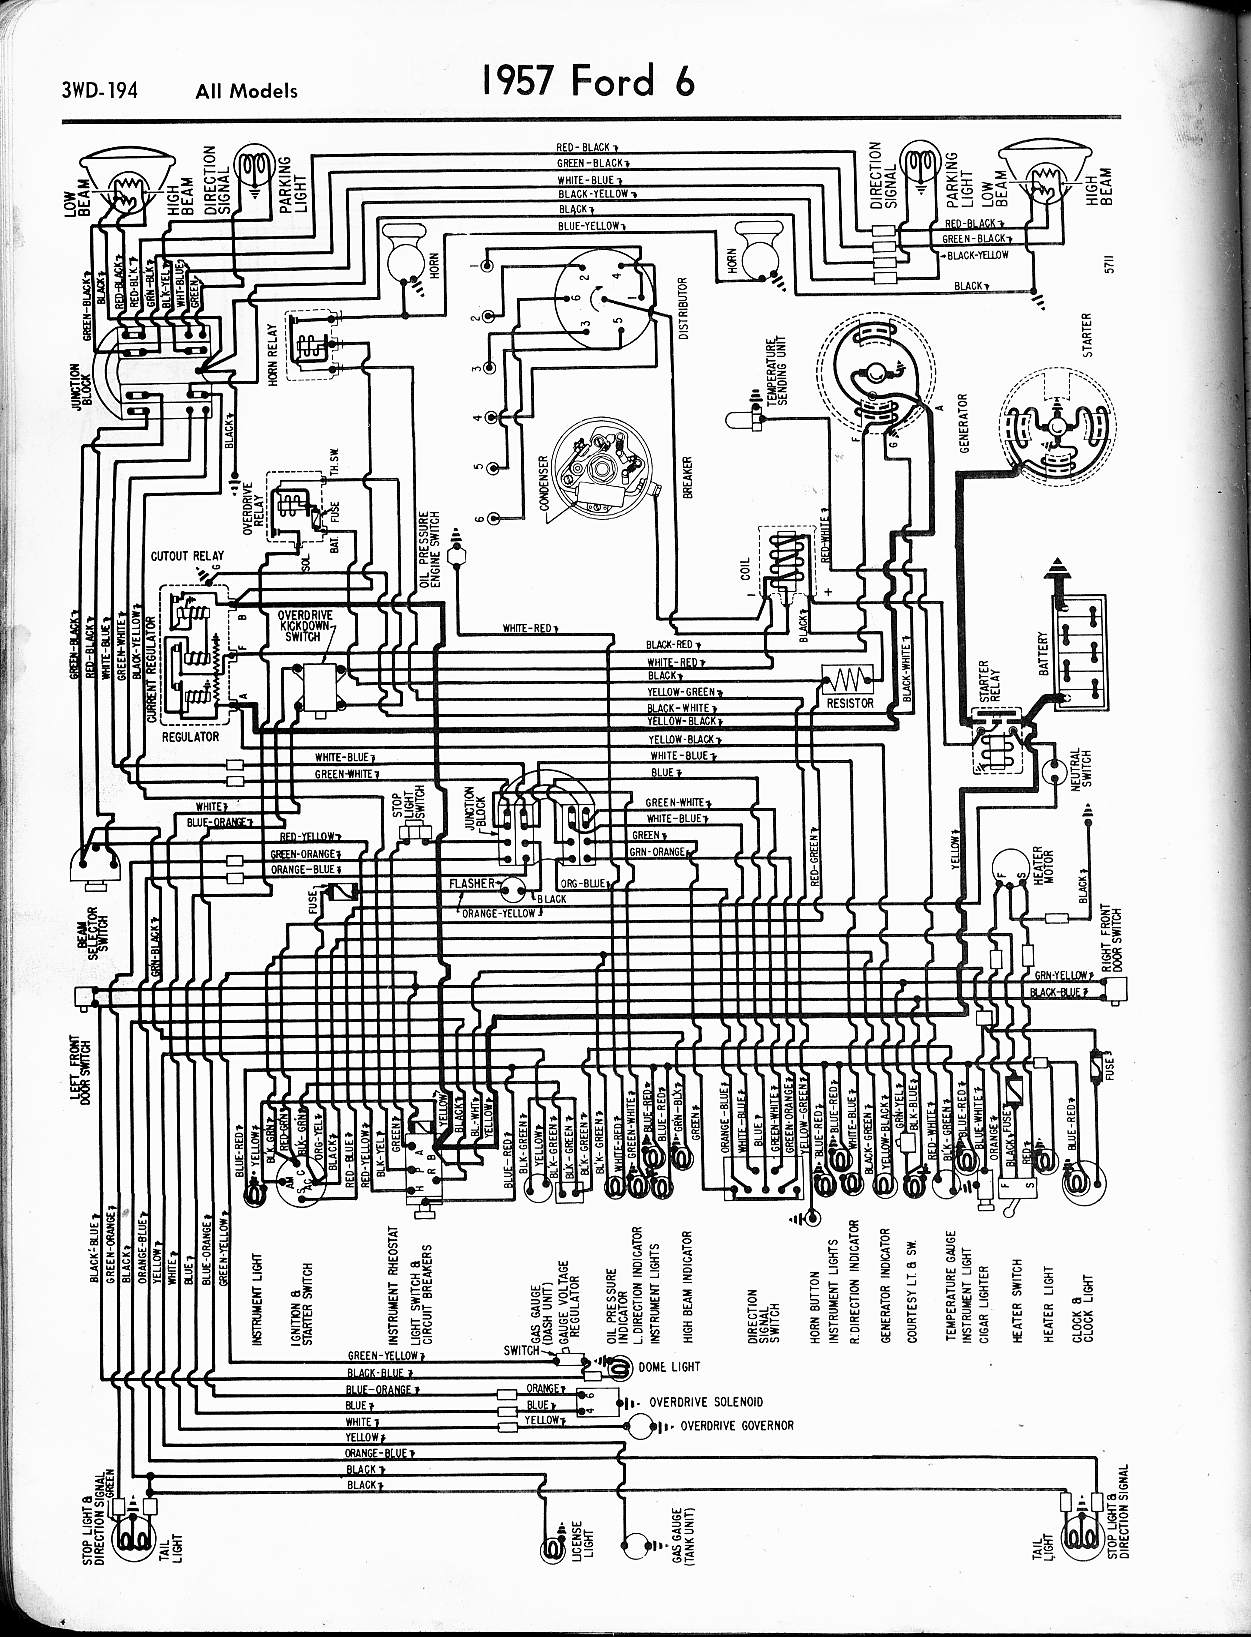 1935 ford pickup light wiring diagram schematic detailed rh drphilipharris com Ford 302 Engine Wiring Diagrams Coil and Distributor Wiring Diagram